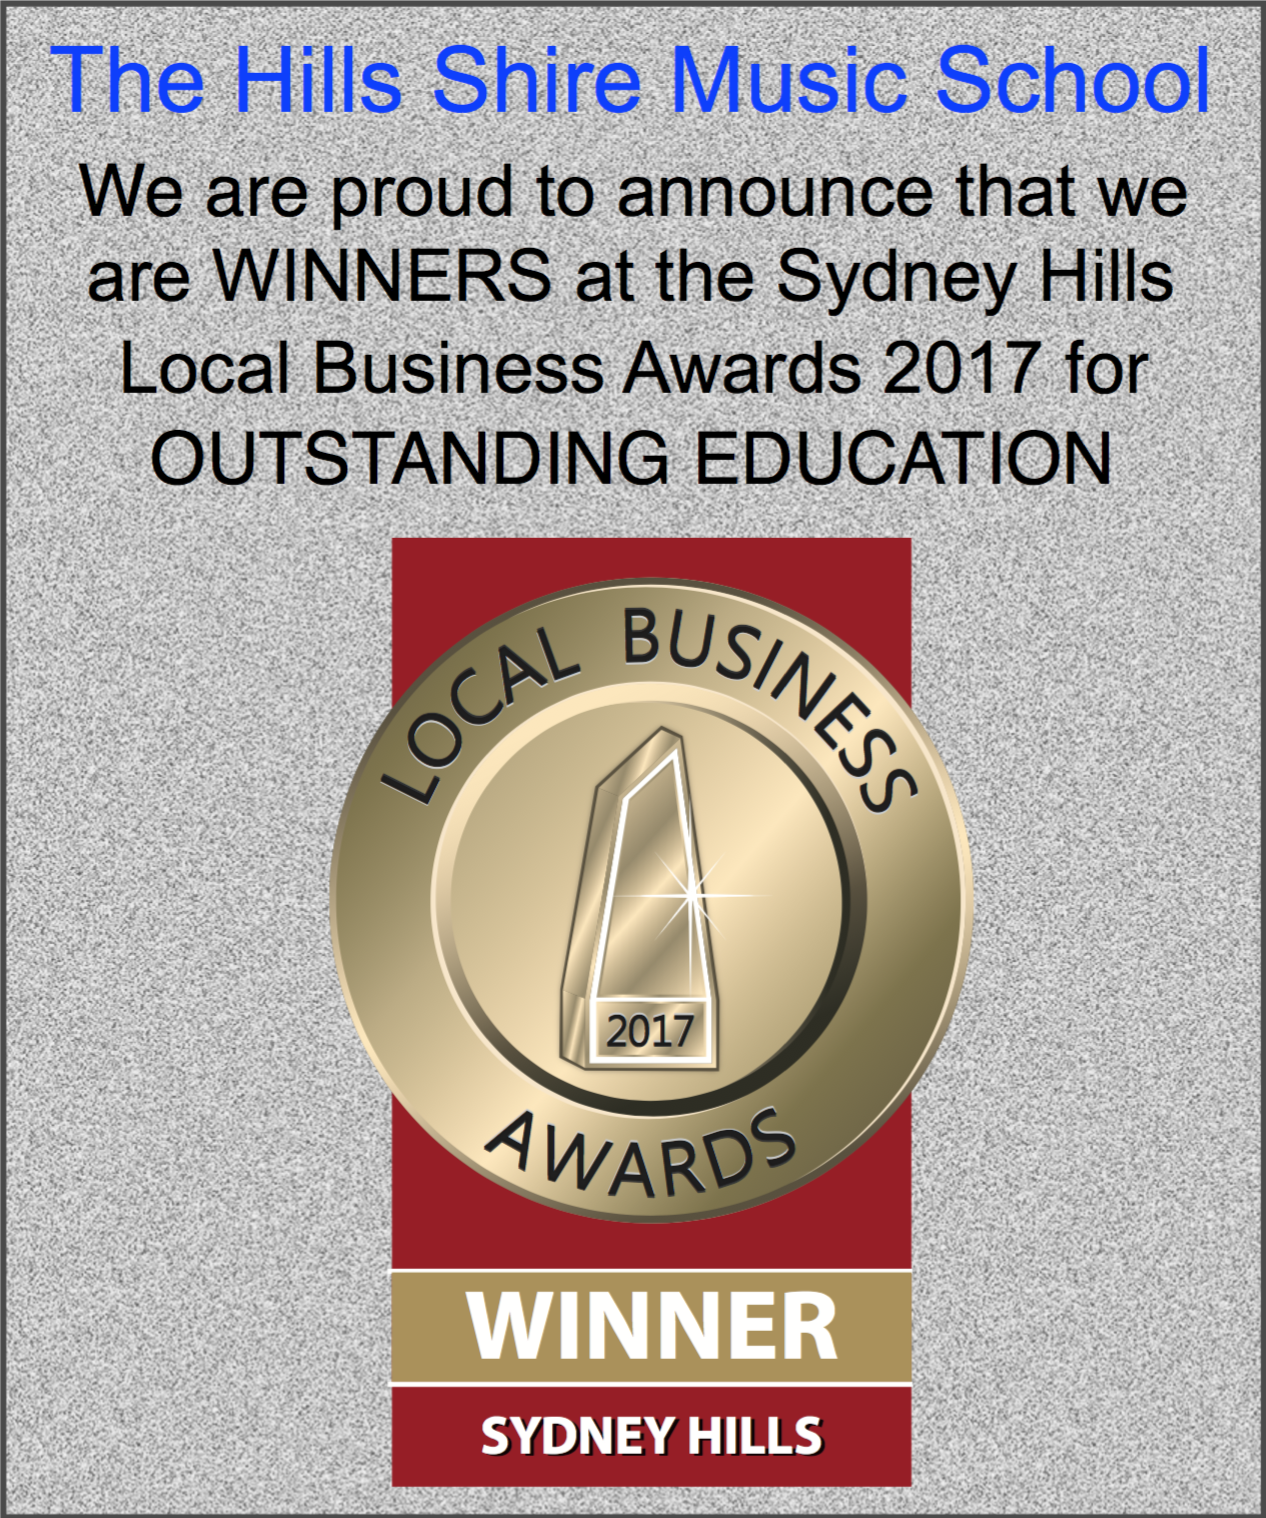 Local Business Awards Winner, 2017